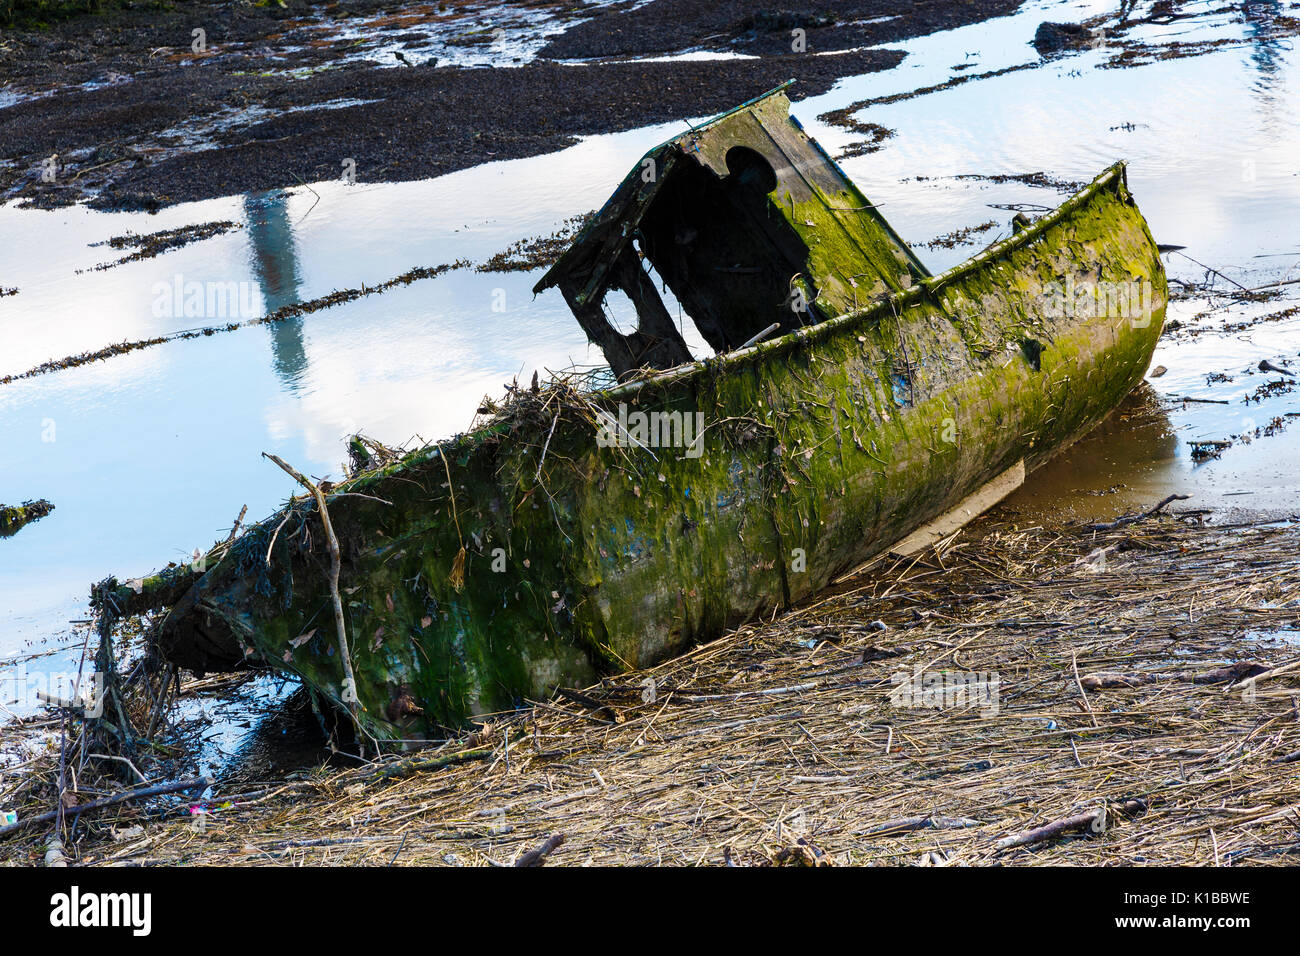 Old boat and tidal waste. Colindres, Cantabria, Spain. - Stock Image